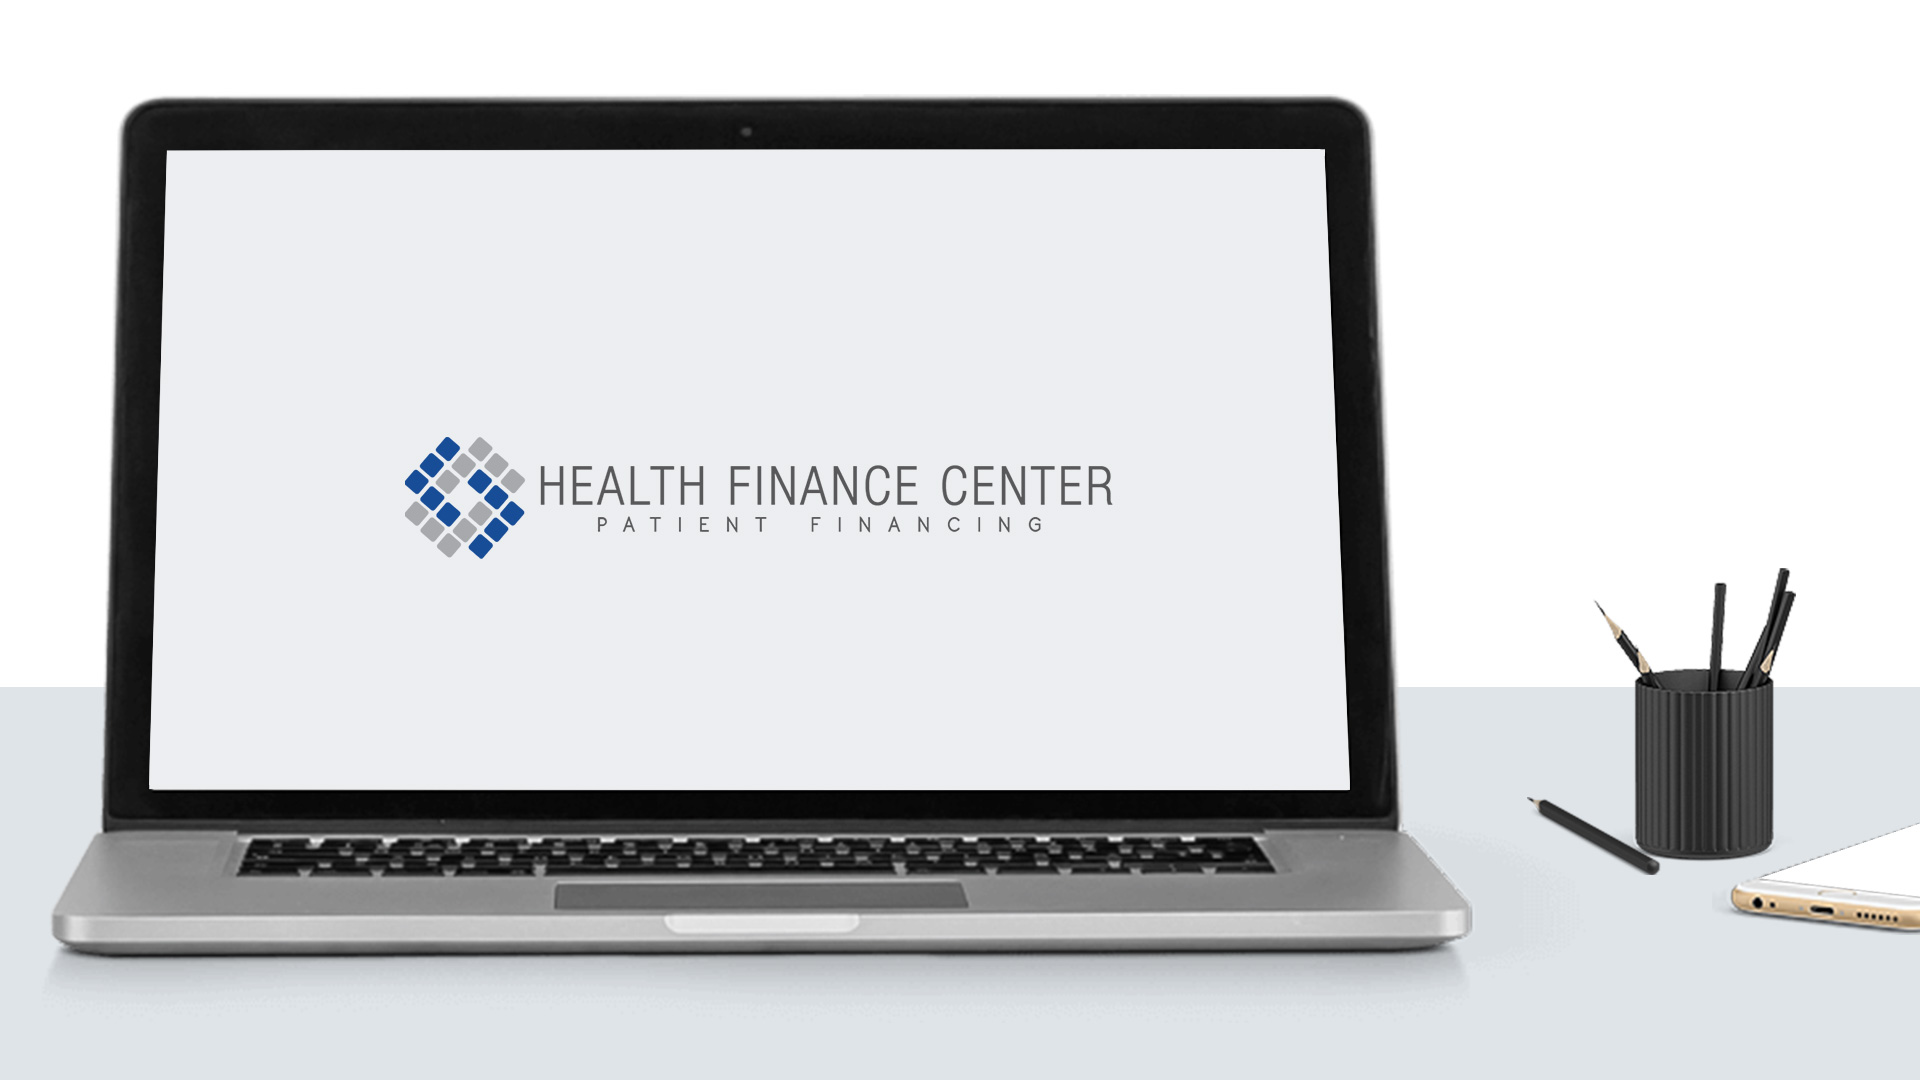 wp content uploads 2017 01 health finance center logo.jpg